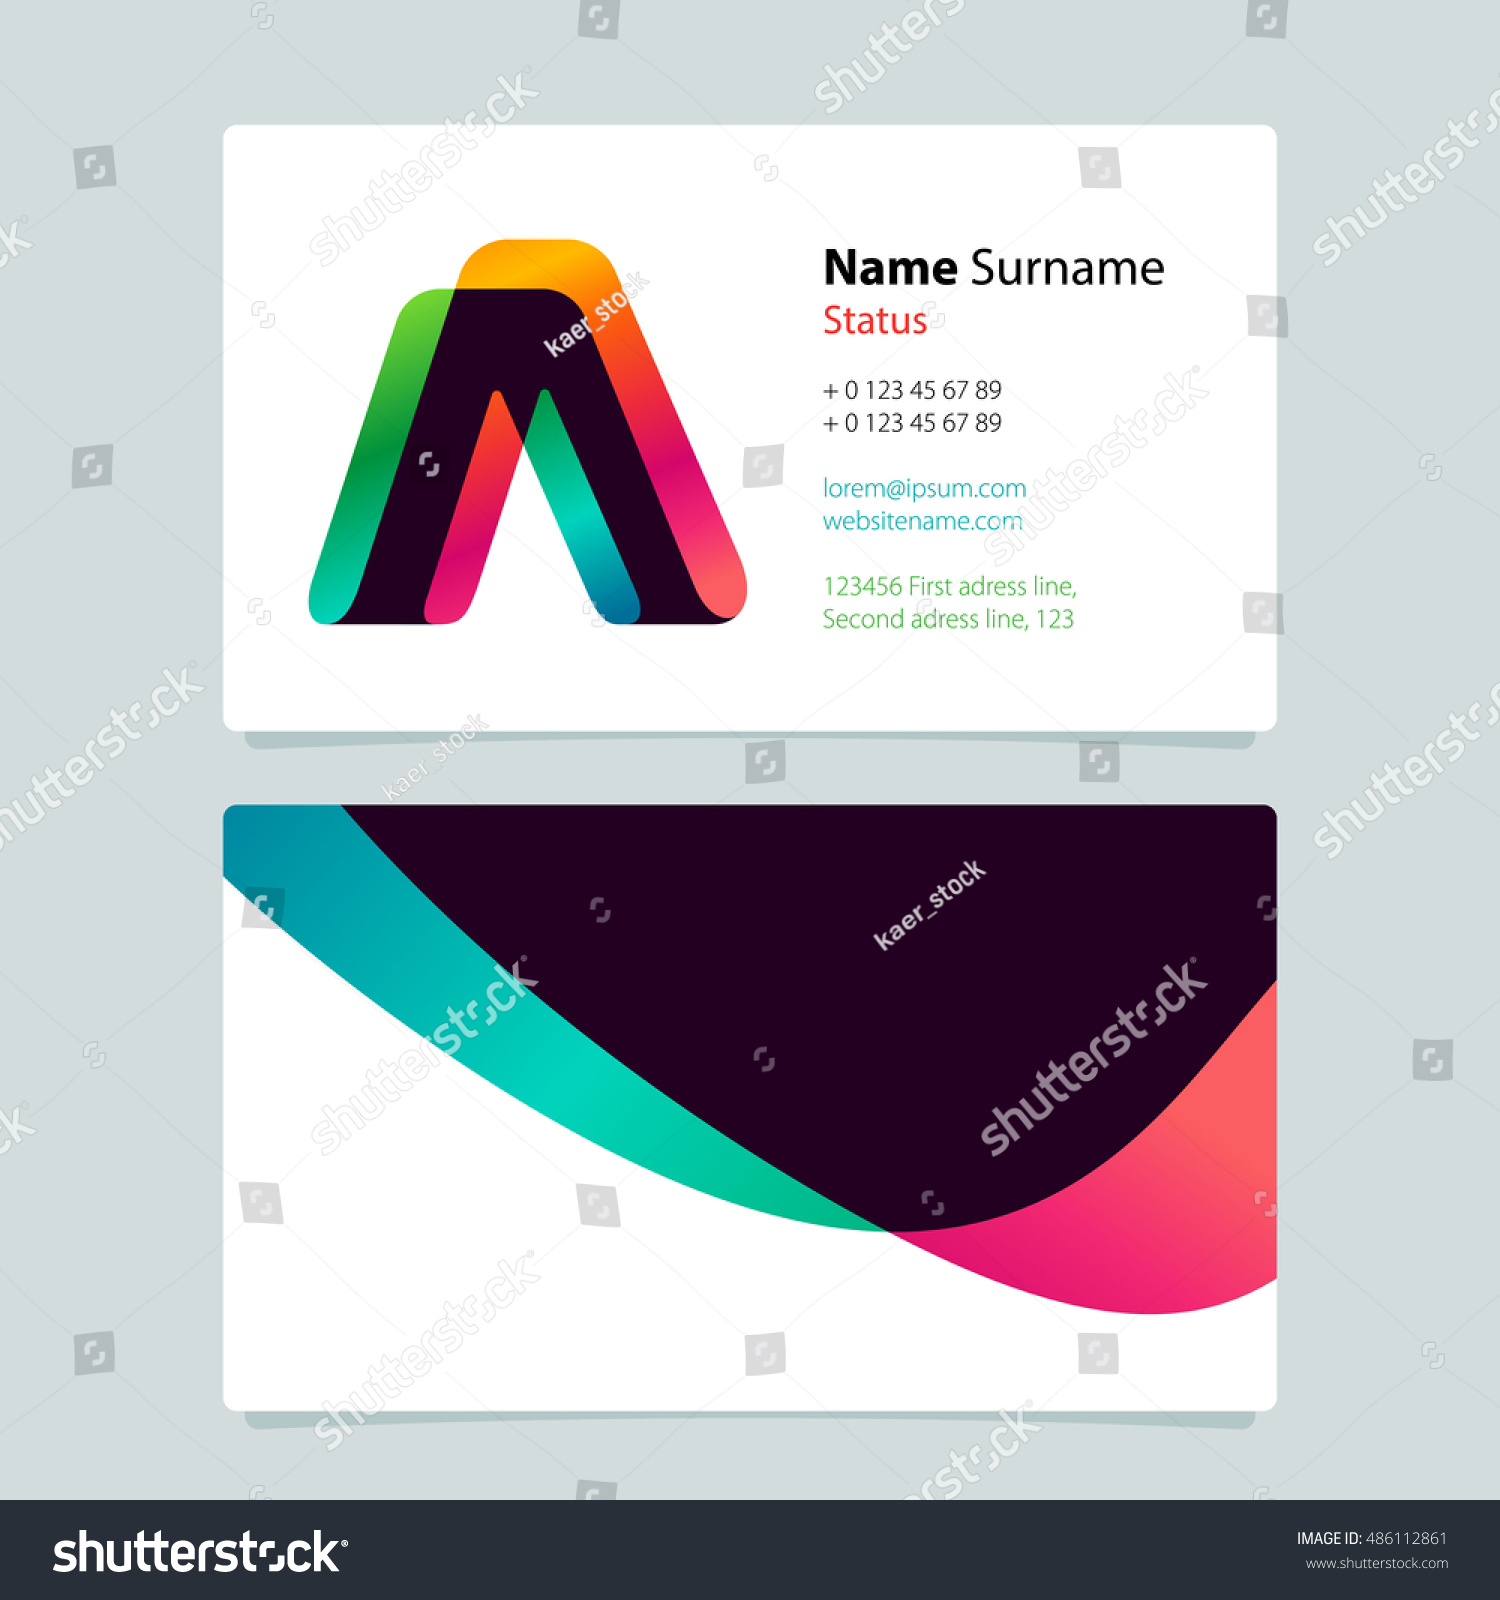 Colorful Business Cards Image collections - Free Business Cards